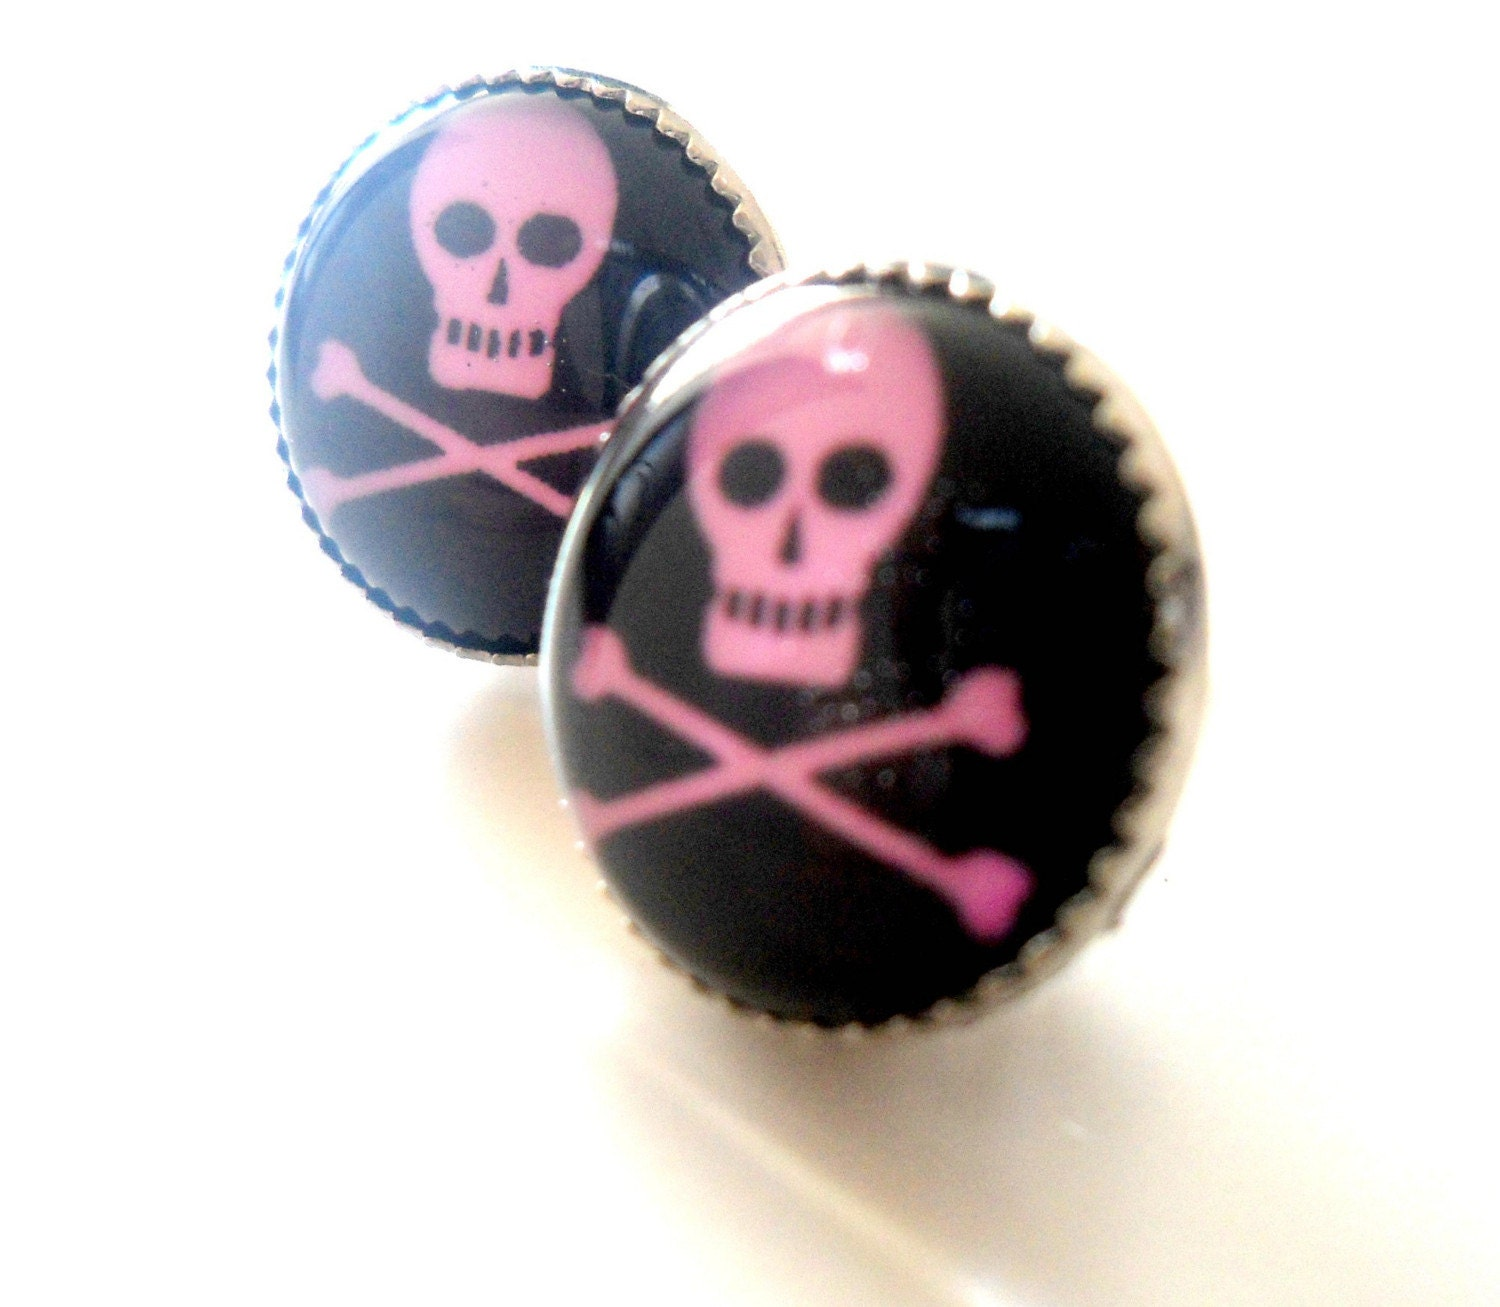 PINK SKULL FILIGREE STERLING SILVER EARSTUDS - FREE WORLDWIDE SHIPPING TIL 31 OCT